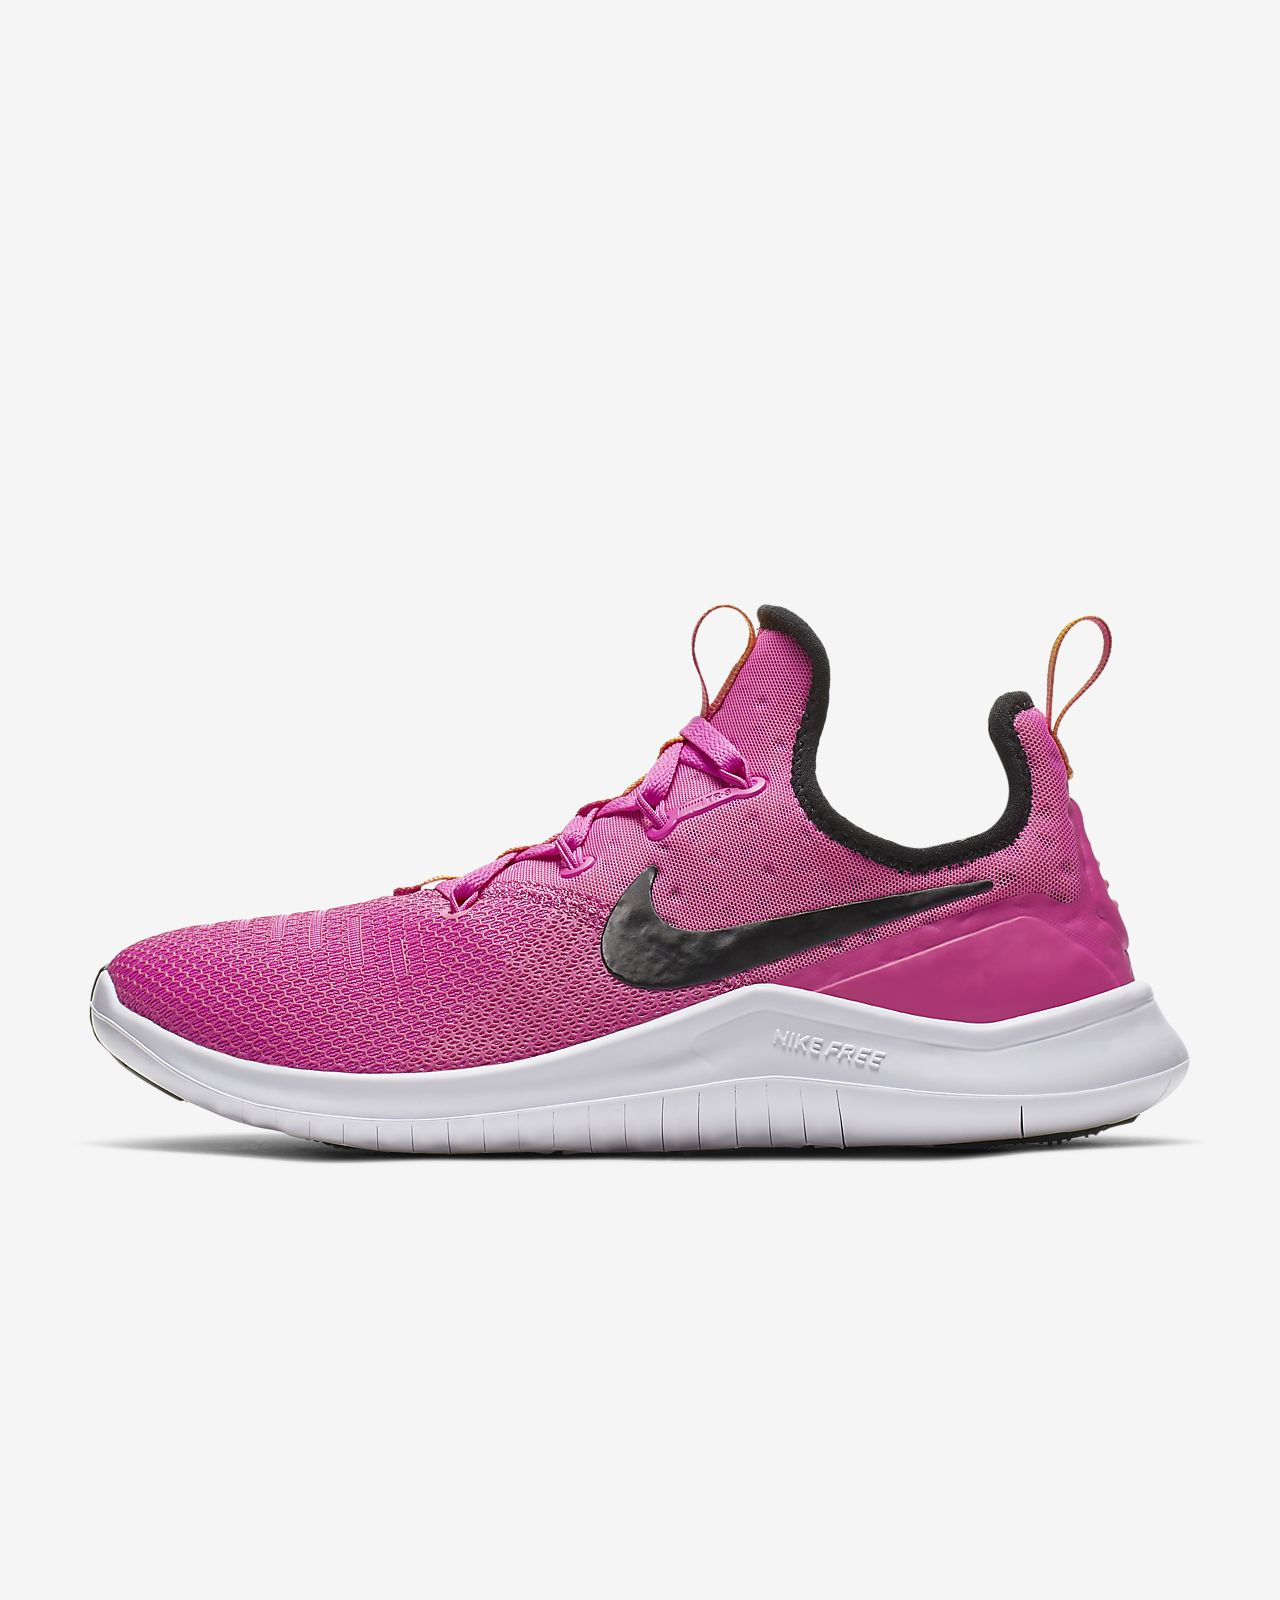 81eca9d3db018 Nike Free TR8 Women s Gym HIIT Cross Training Shoe. Nike.com